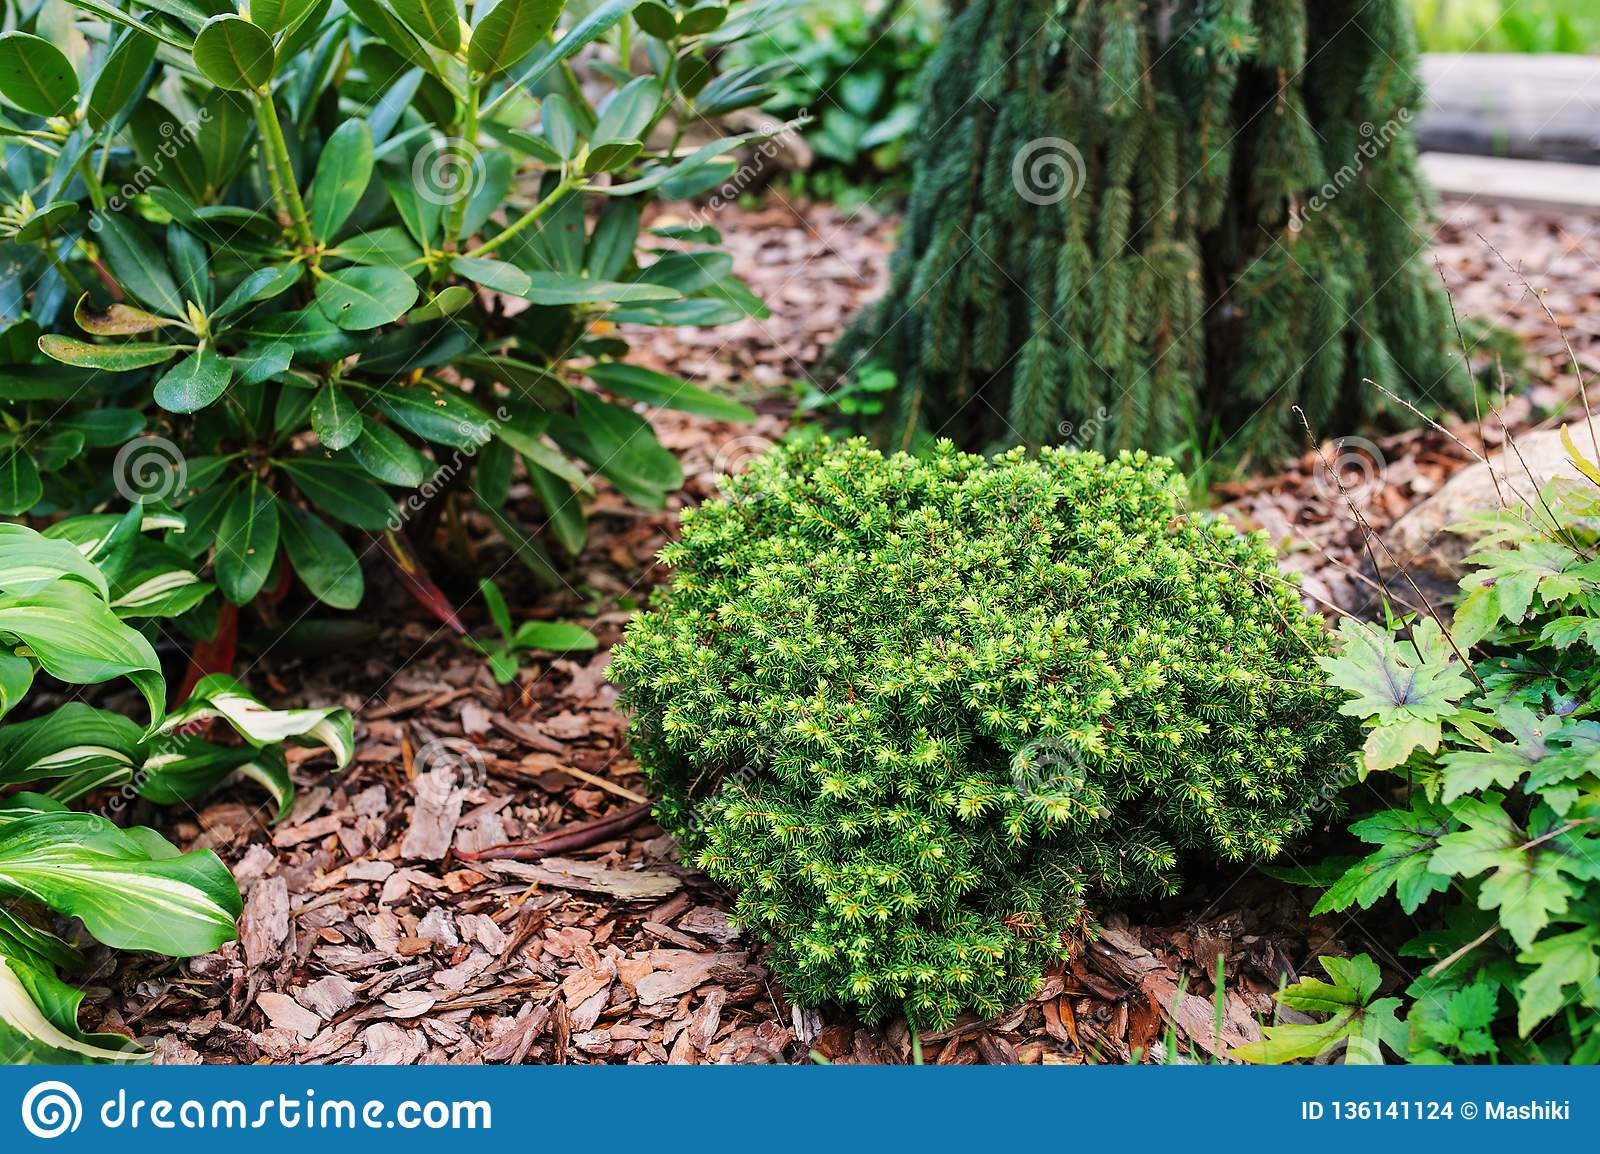 Picea Abies Little Gem Rare Dwarf Conifer Planted In Garden With